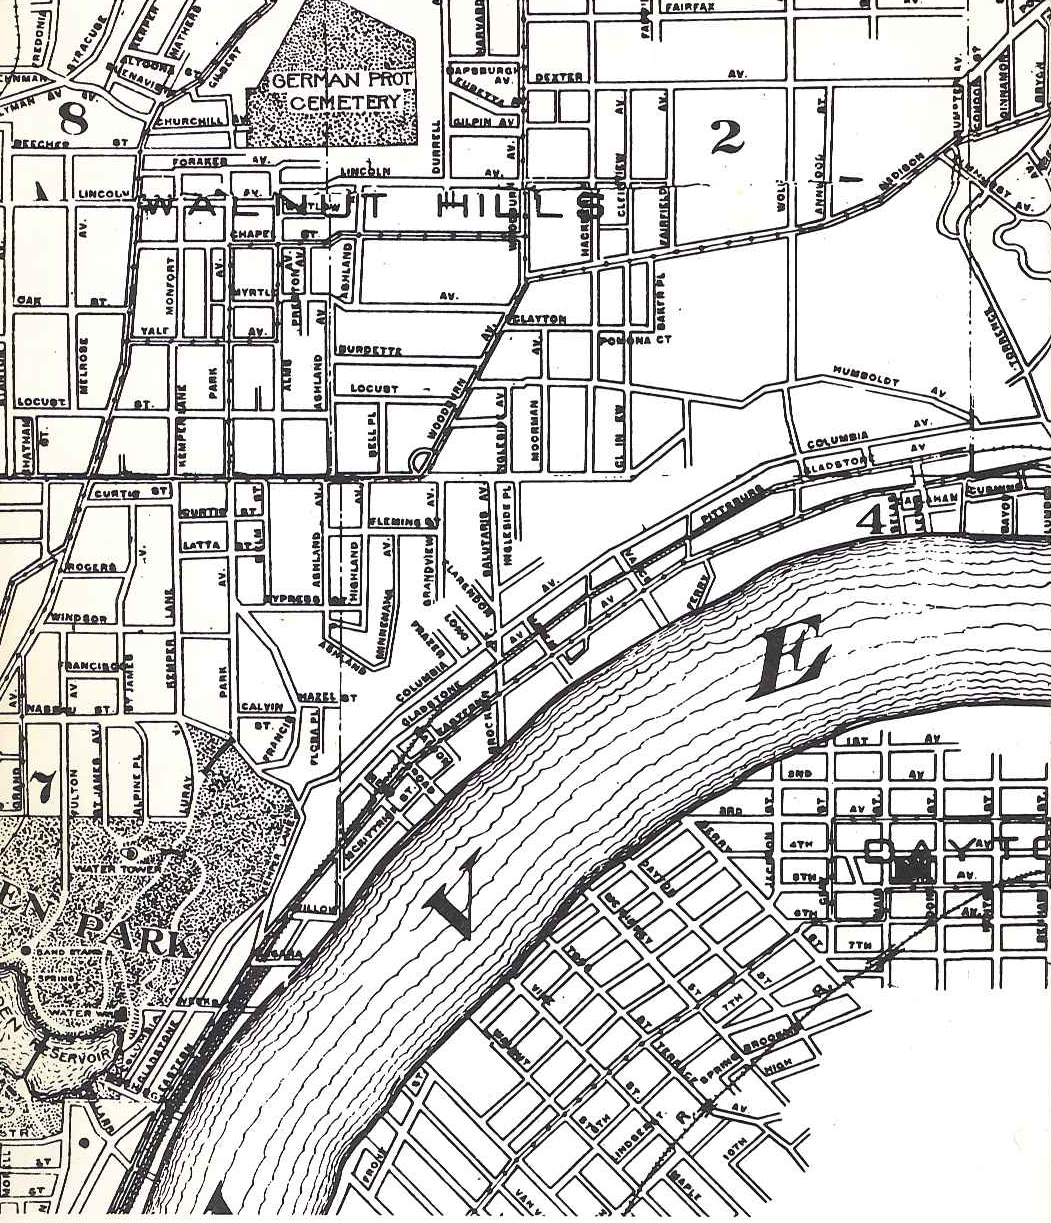 Walnut Hills from the Rand McNally & Co.'s 1910 Cincinnati map.